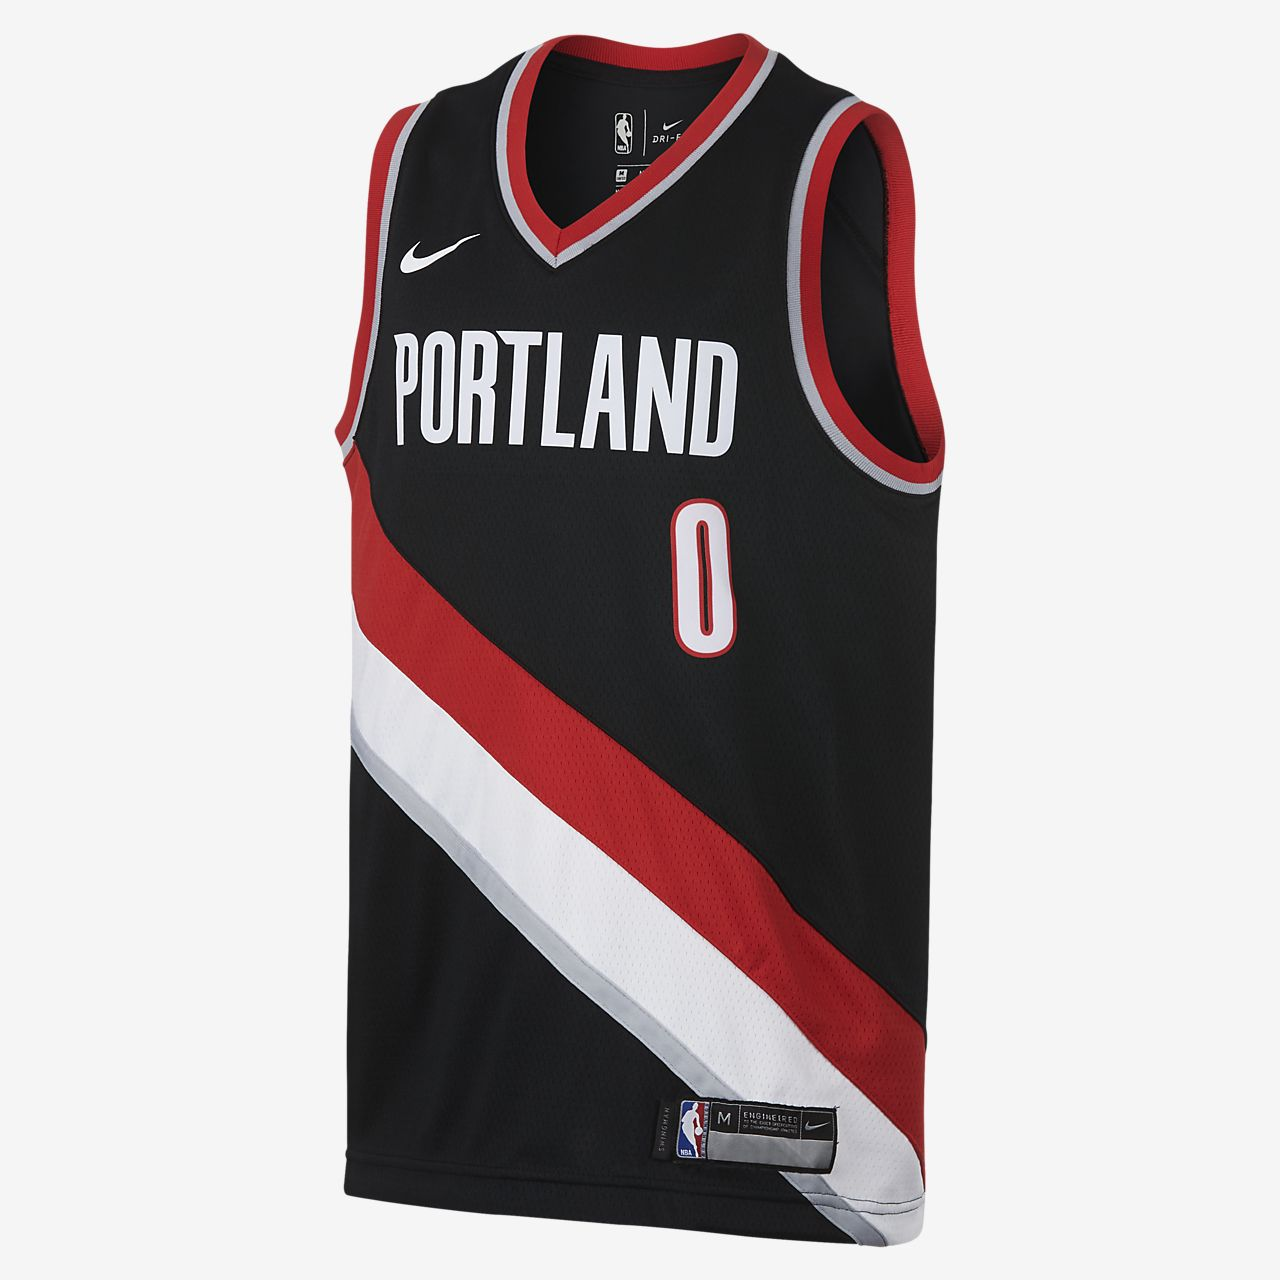 low priced c1fd0 54230 Damian Lillard Portland Trail Blazers Nike Icon Edition Swingman Big Kids'  NBA Jersey